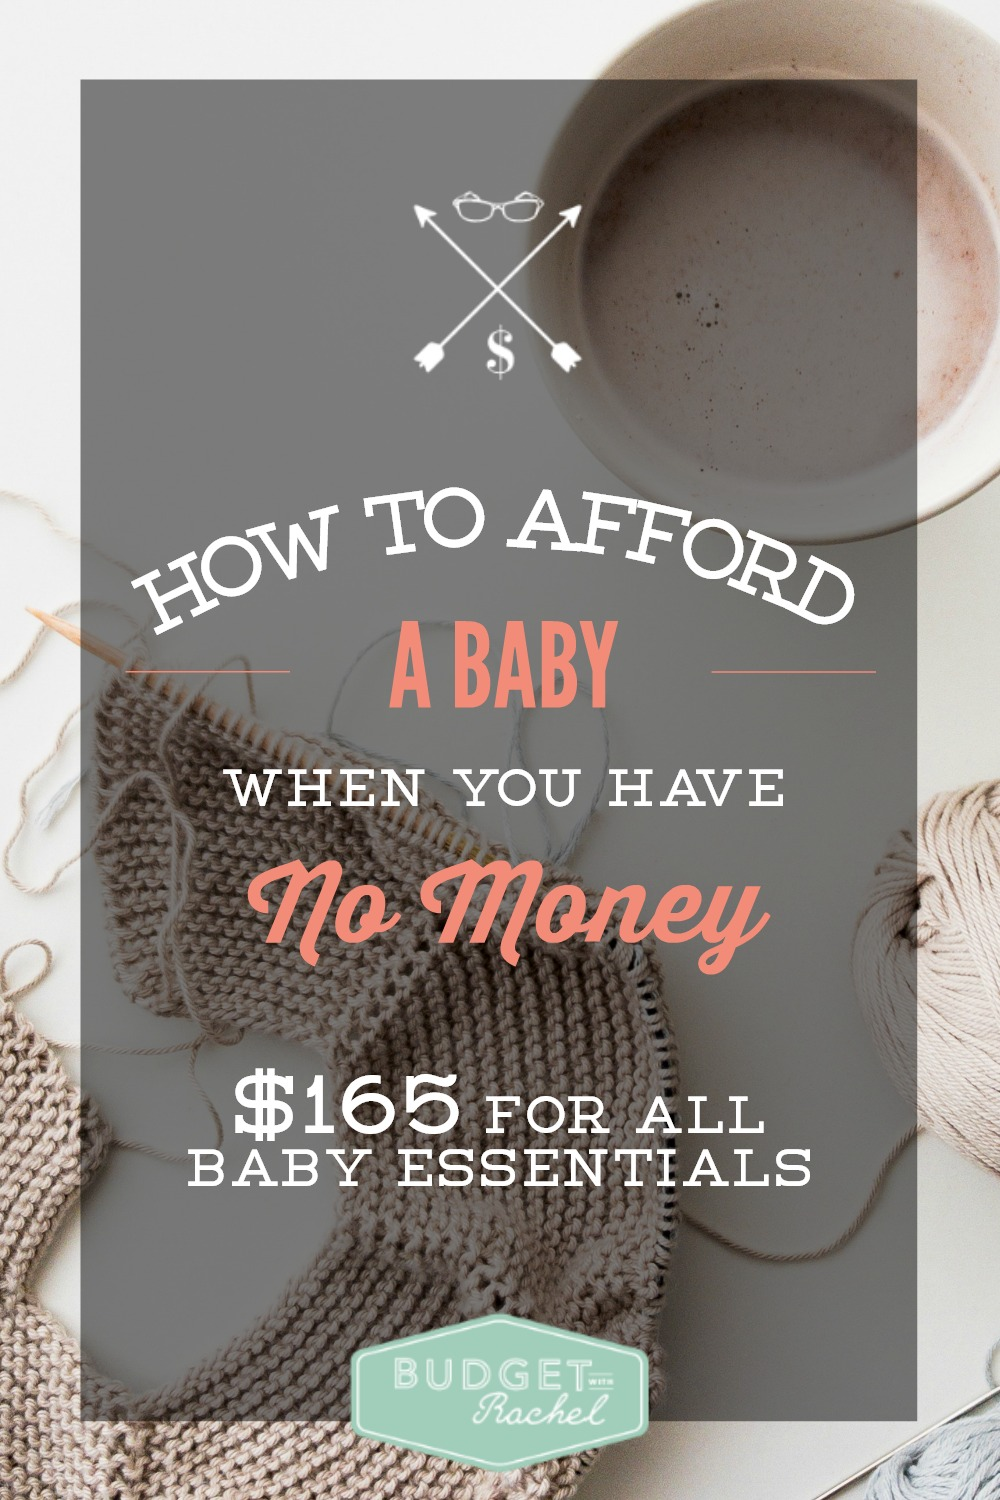 How to Afford a Baby When You're Broke (Only $165 for all newborn essentials!) This is awesome! I was freaking out about how to afford a baby and now I know I can do it! $165 to get through the first month of my baby's life? Yes, please!! This is so practical and has given me permission to give my baby what he actually needs.